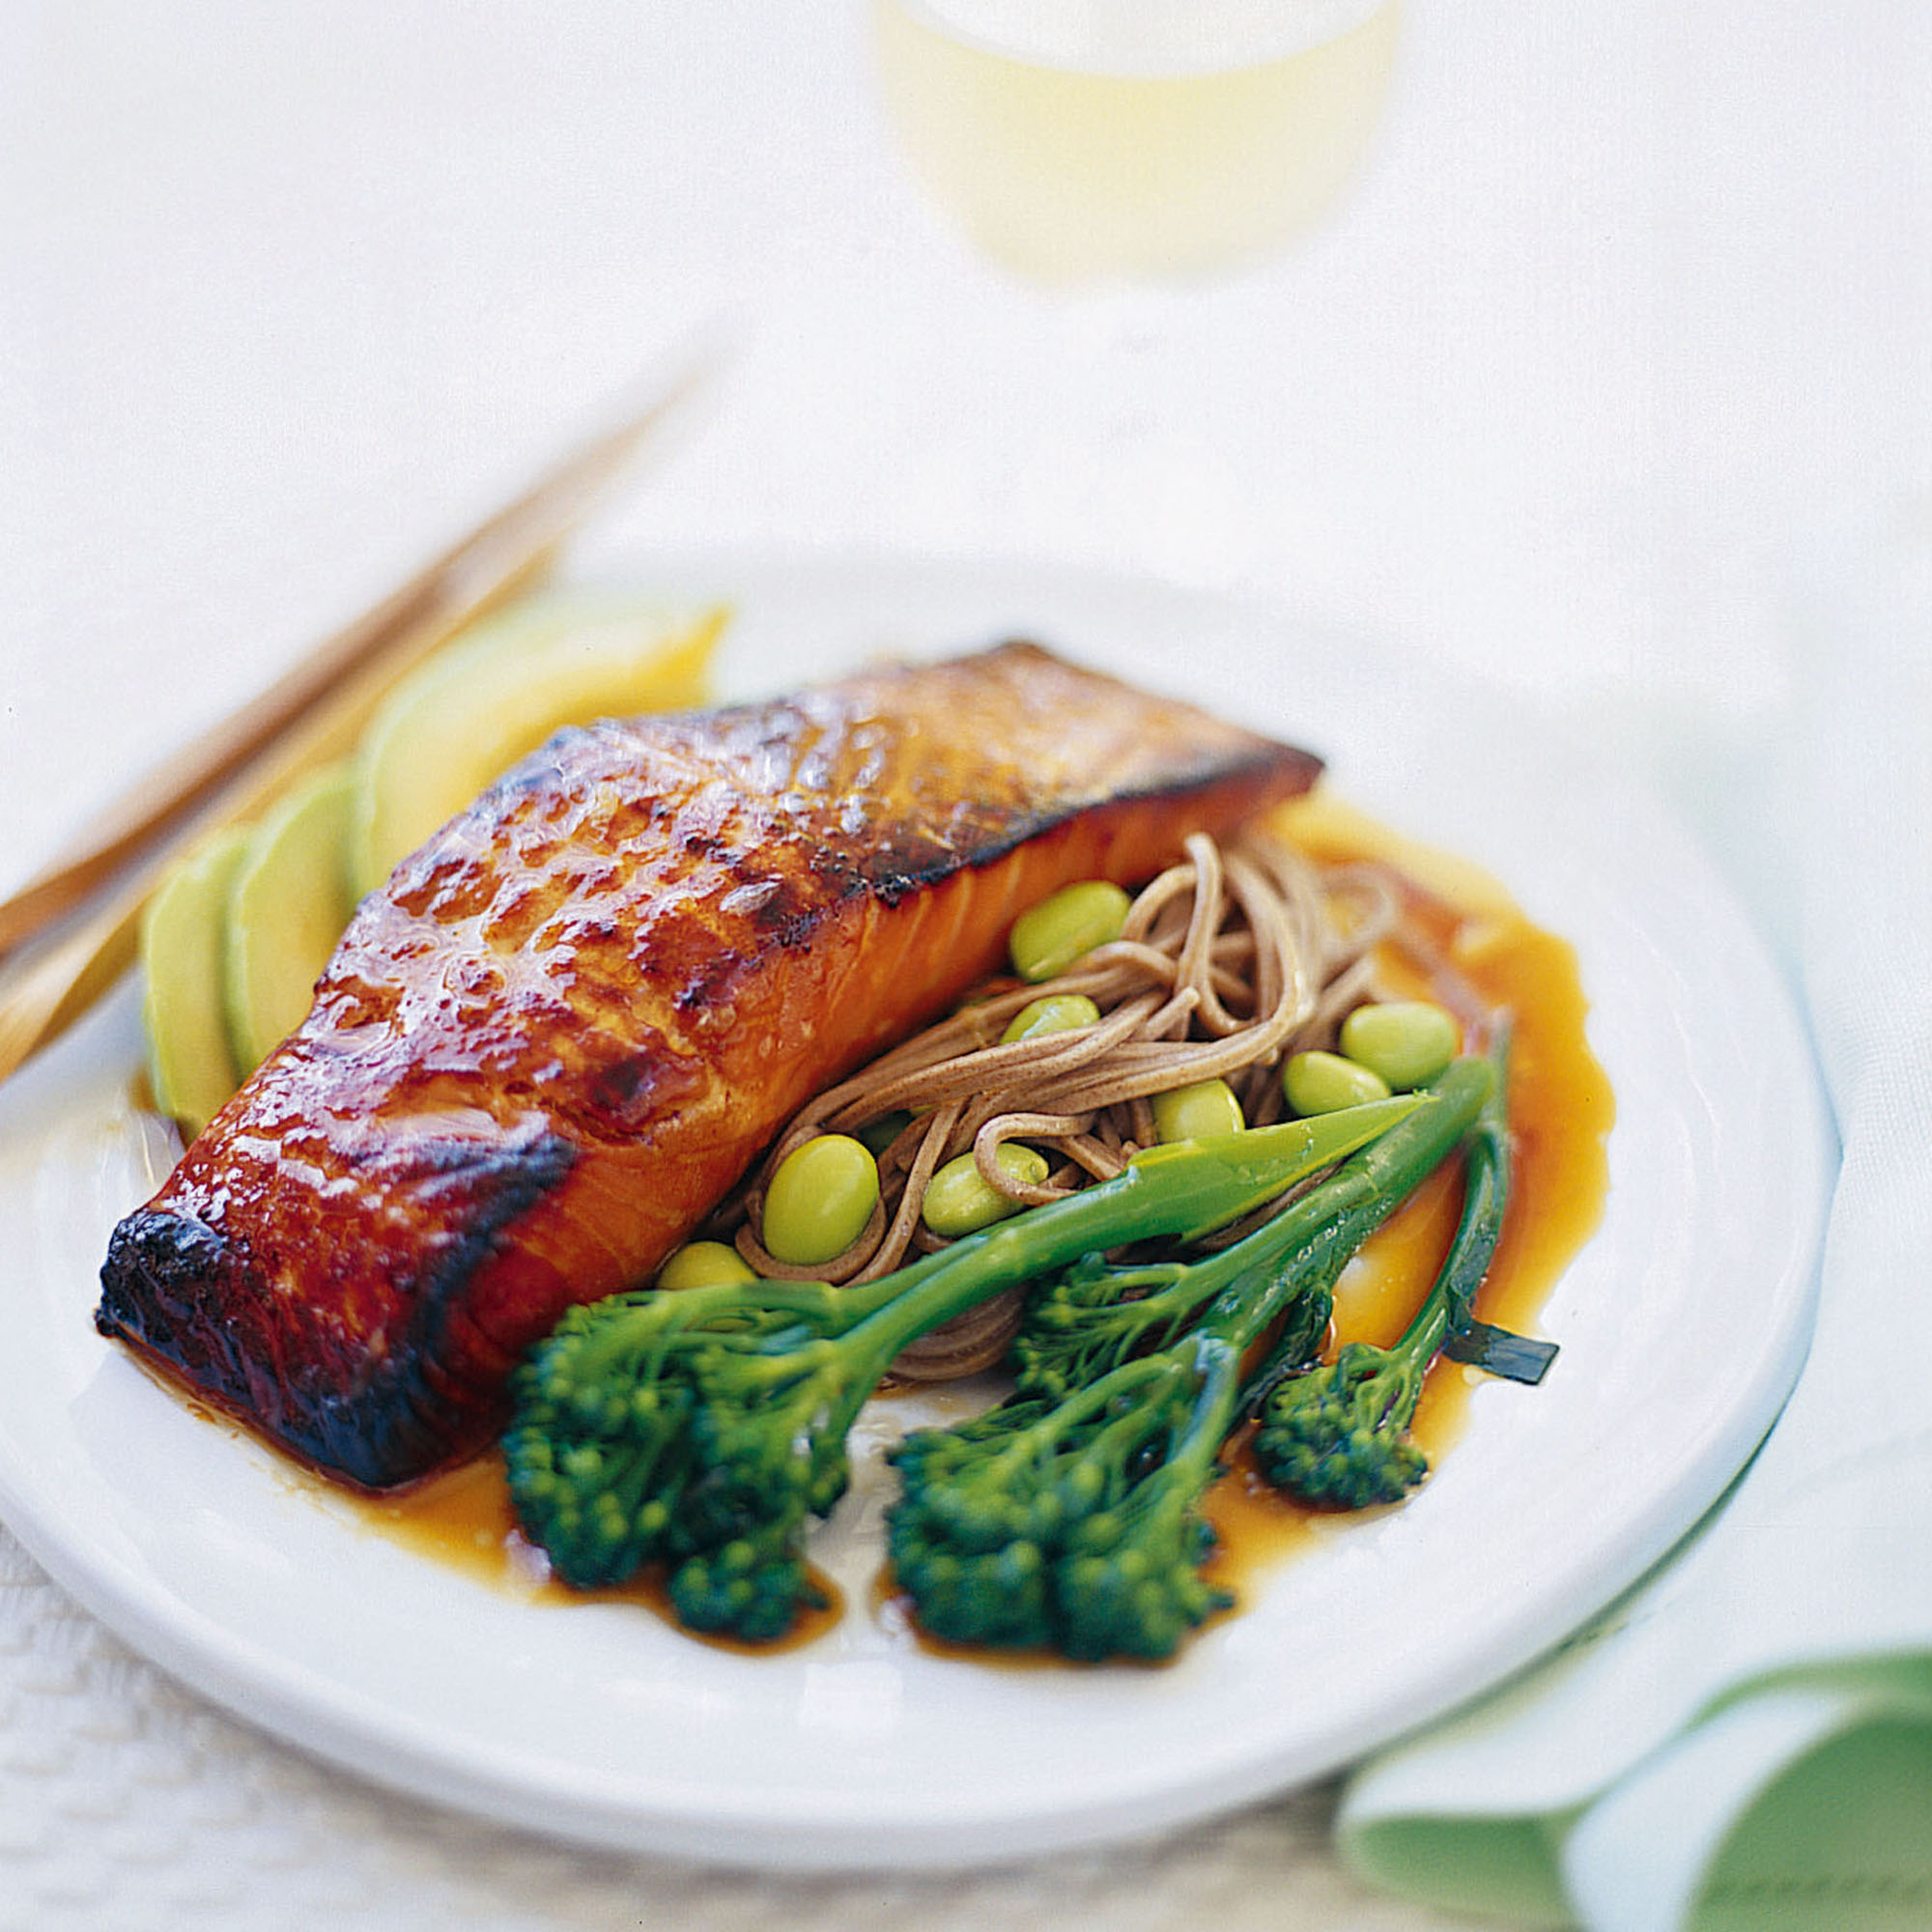 salmon calorie low noodles recipes teriyaki soba recipe healthy ramsay gordon noodle dinner woman meals japanese diet sweet salad cal